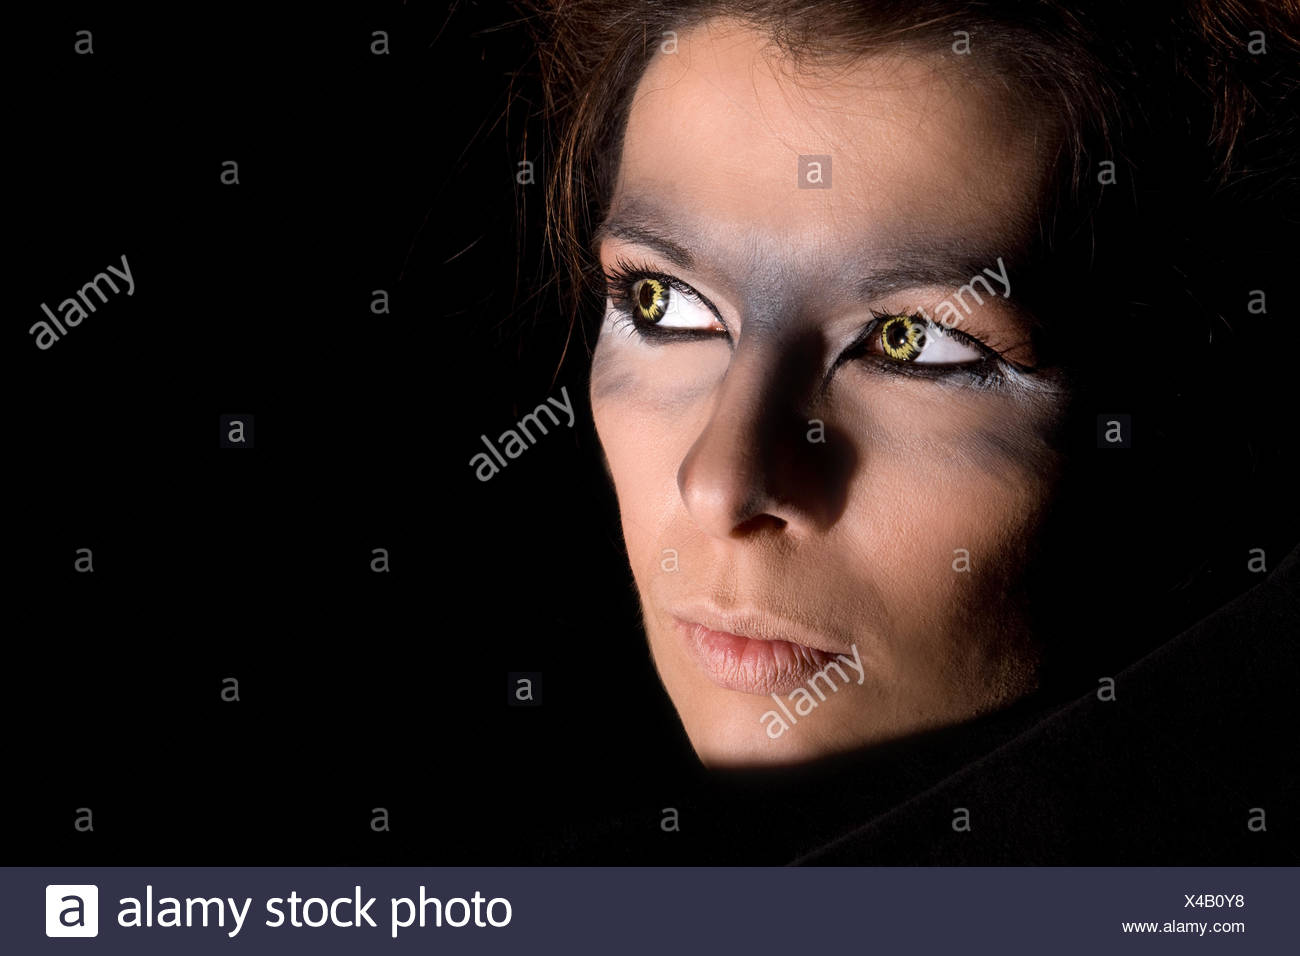 Mystery woman - Stock Image